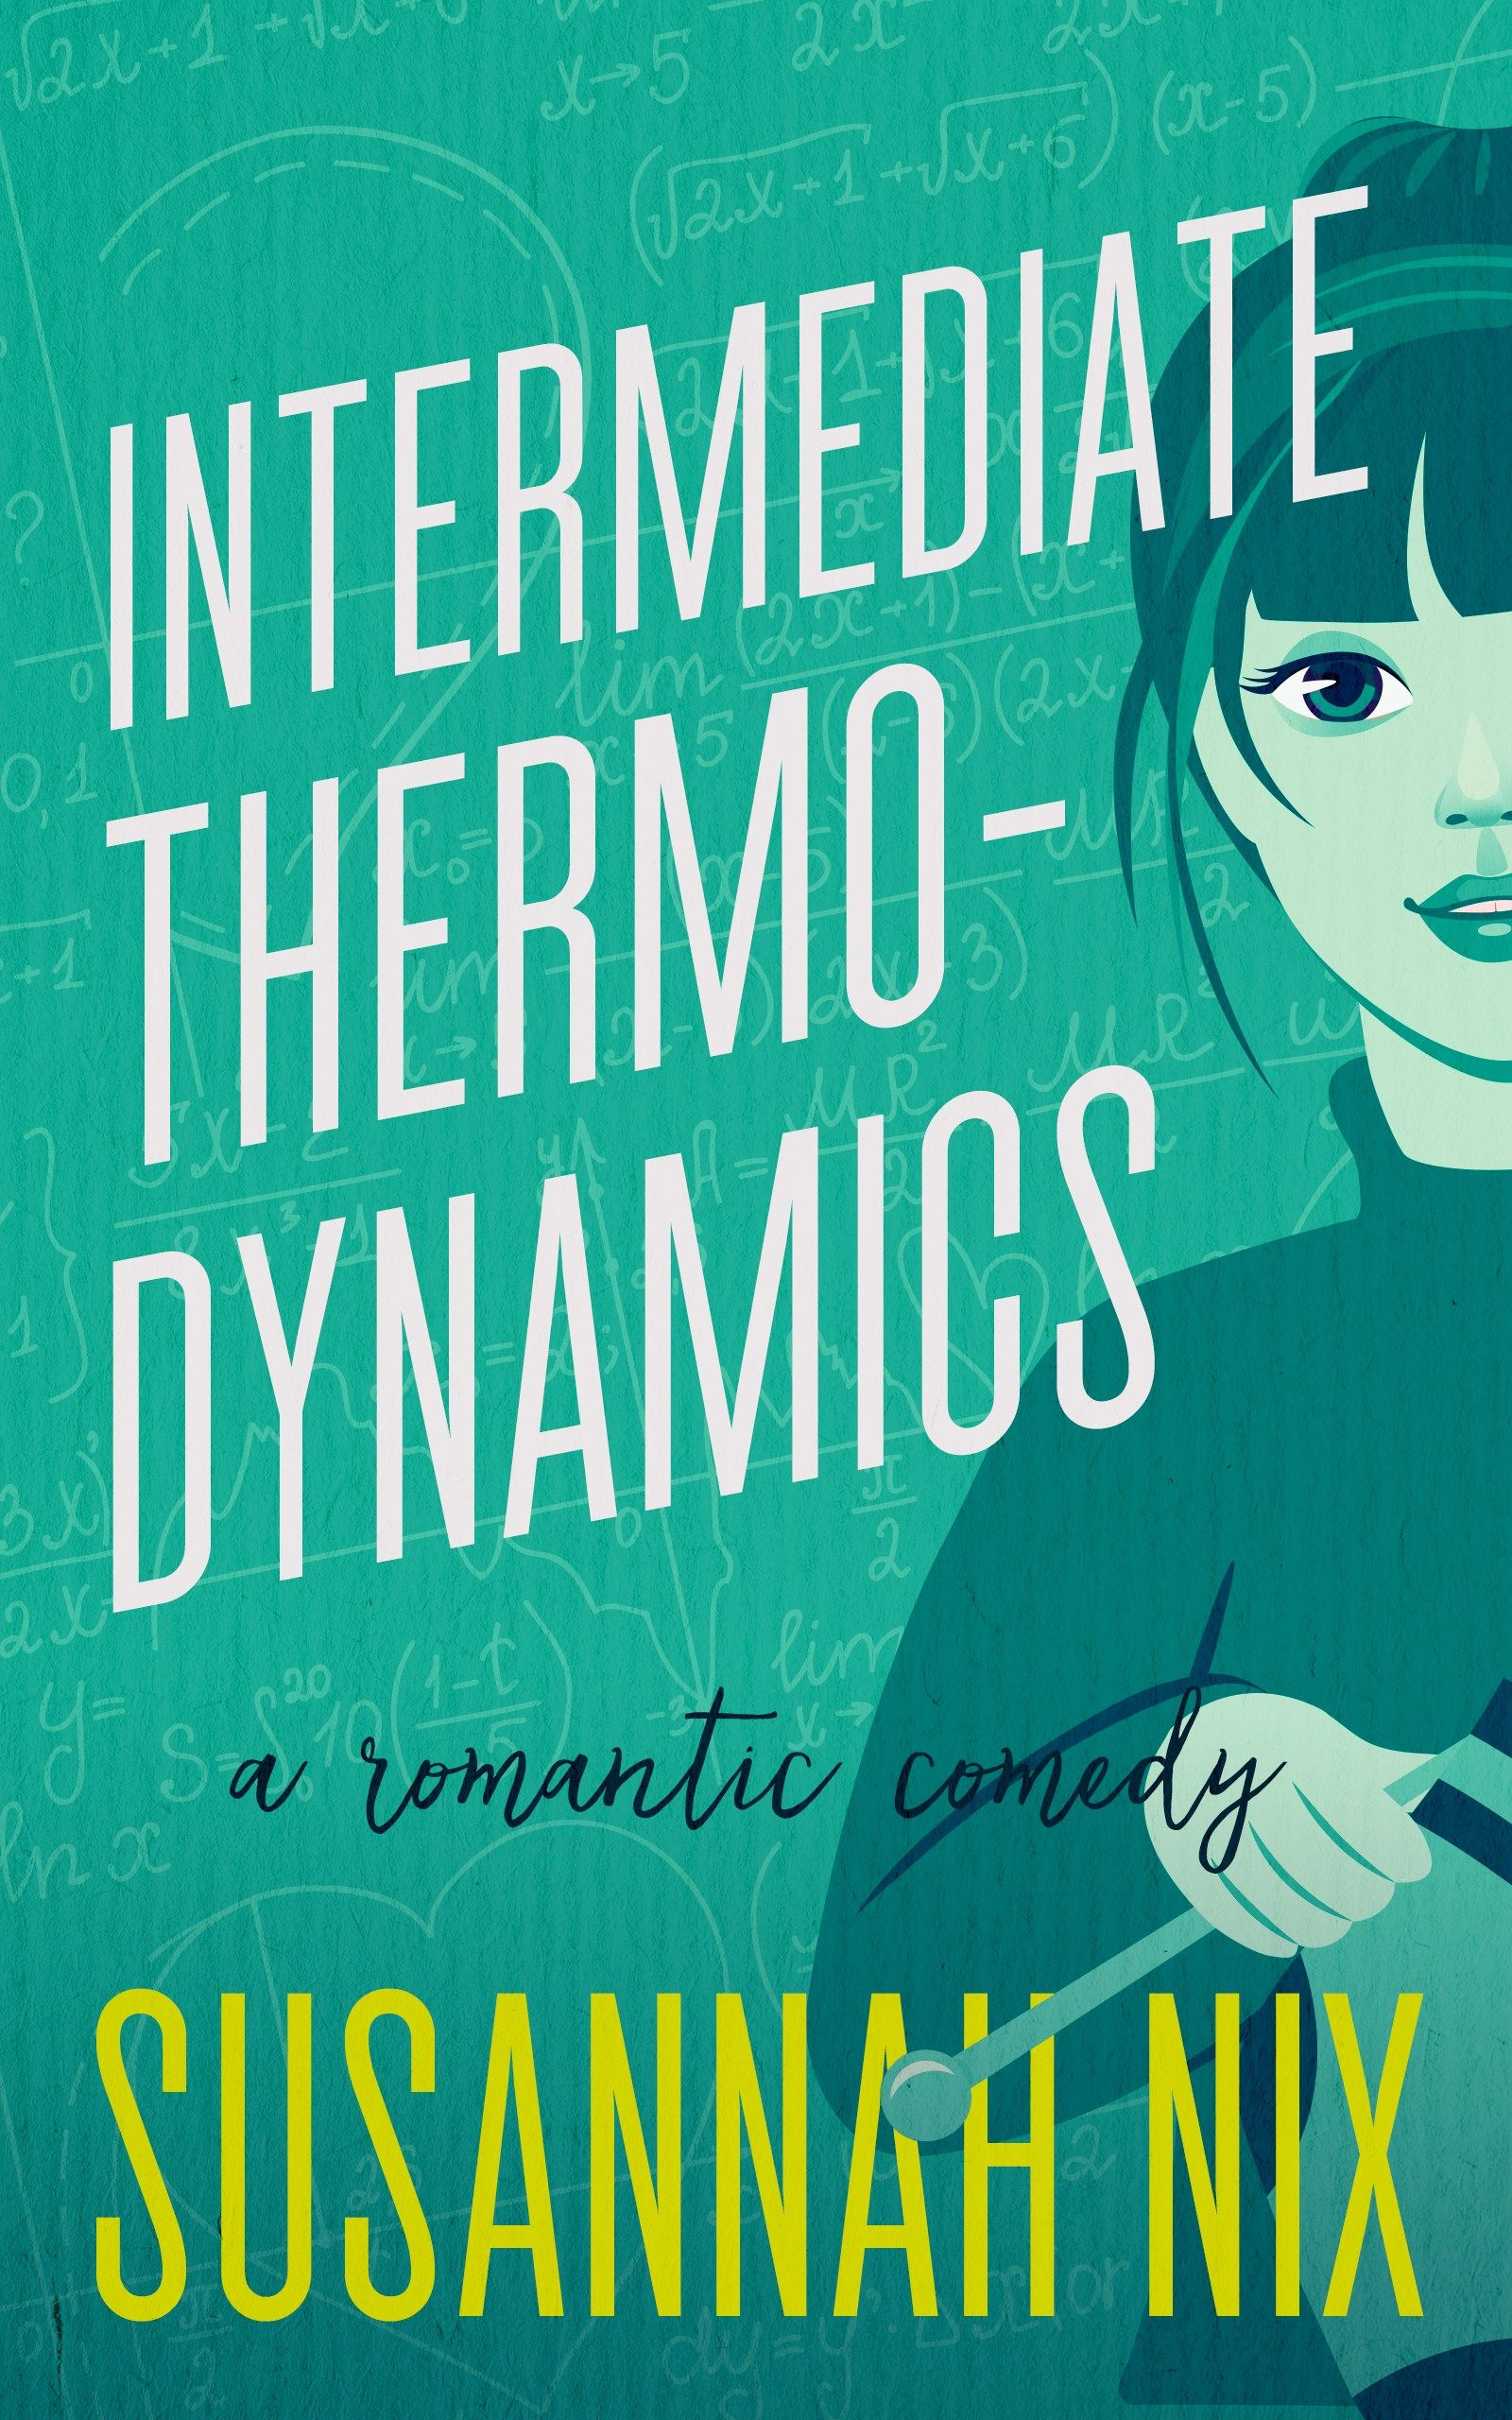 Feature – Intermediate Thermodynamics by Susannah Nix | Book